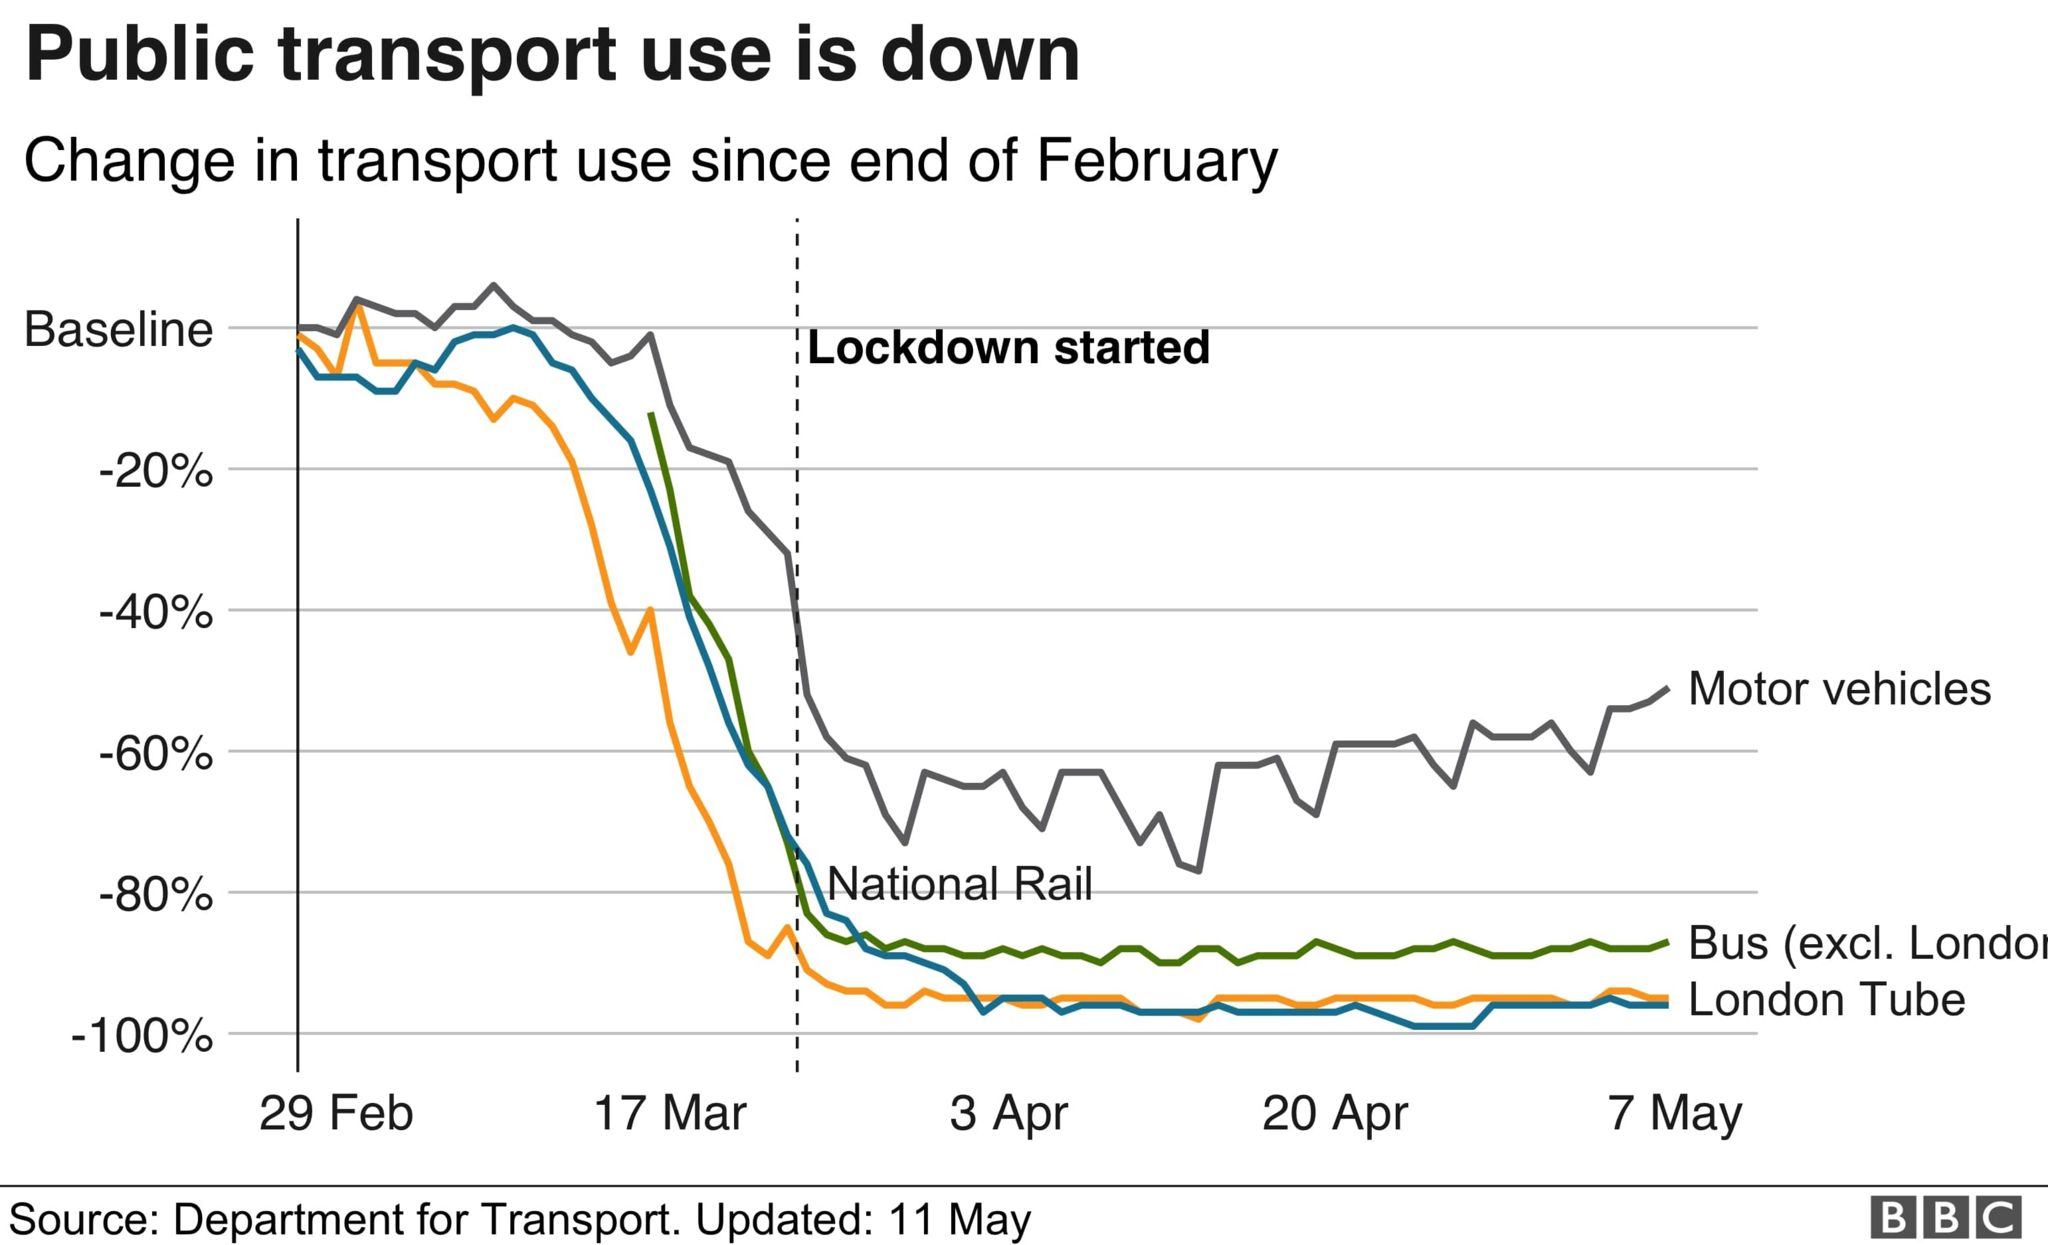 Chart showing change in travel use